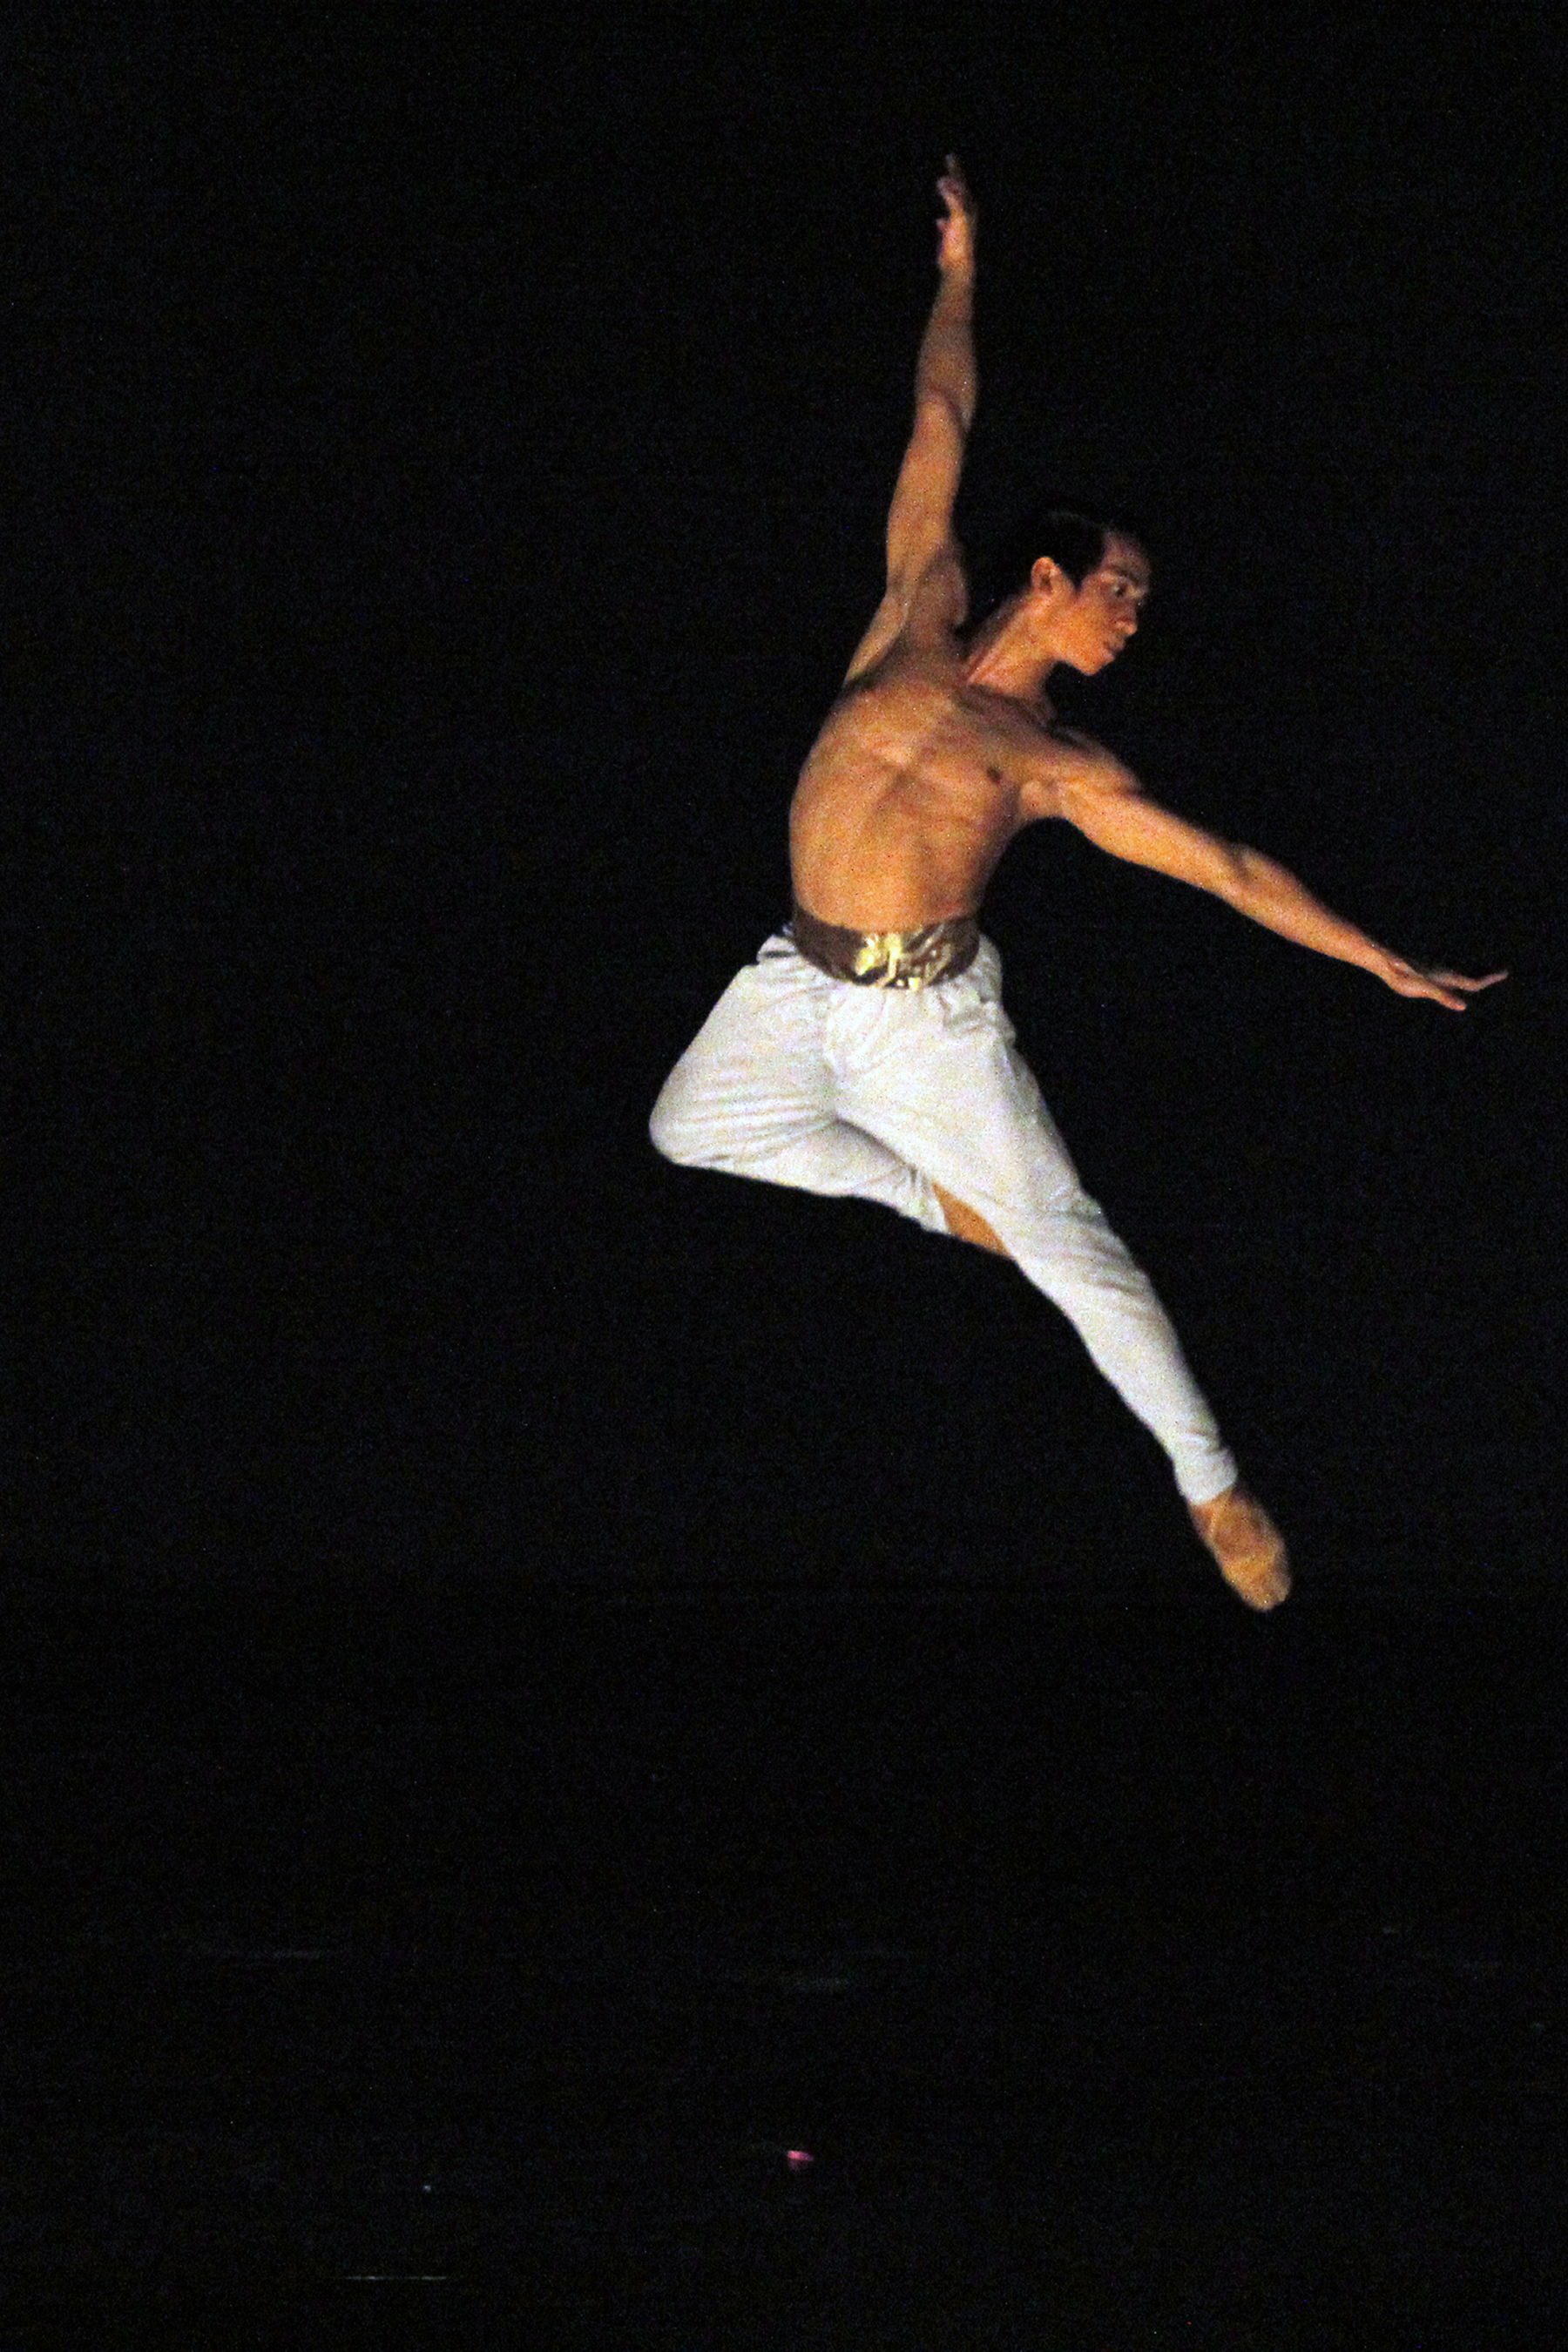 Aiming high, Rudolph works hard not just to equal his idols in dance but to surpass them. Photo by Ocs Alvarez